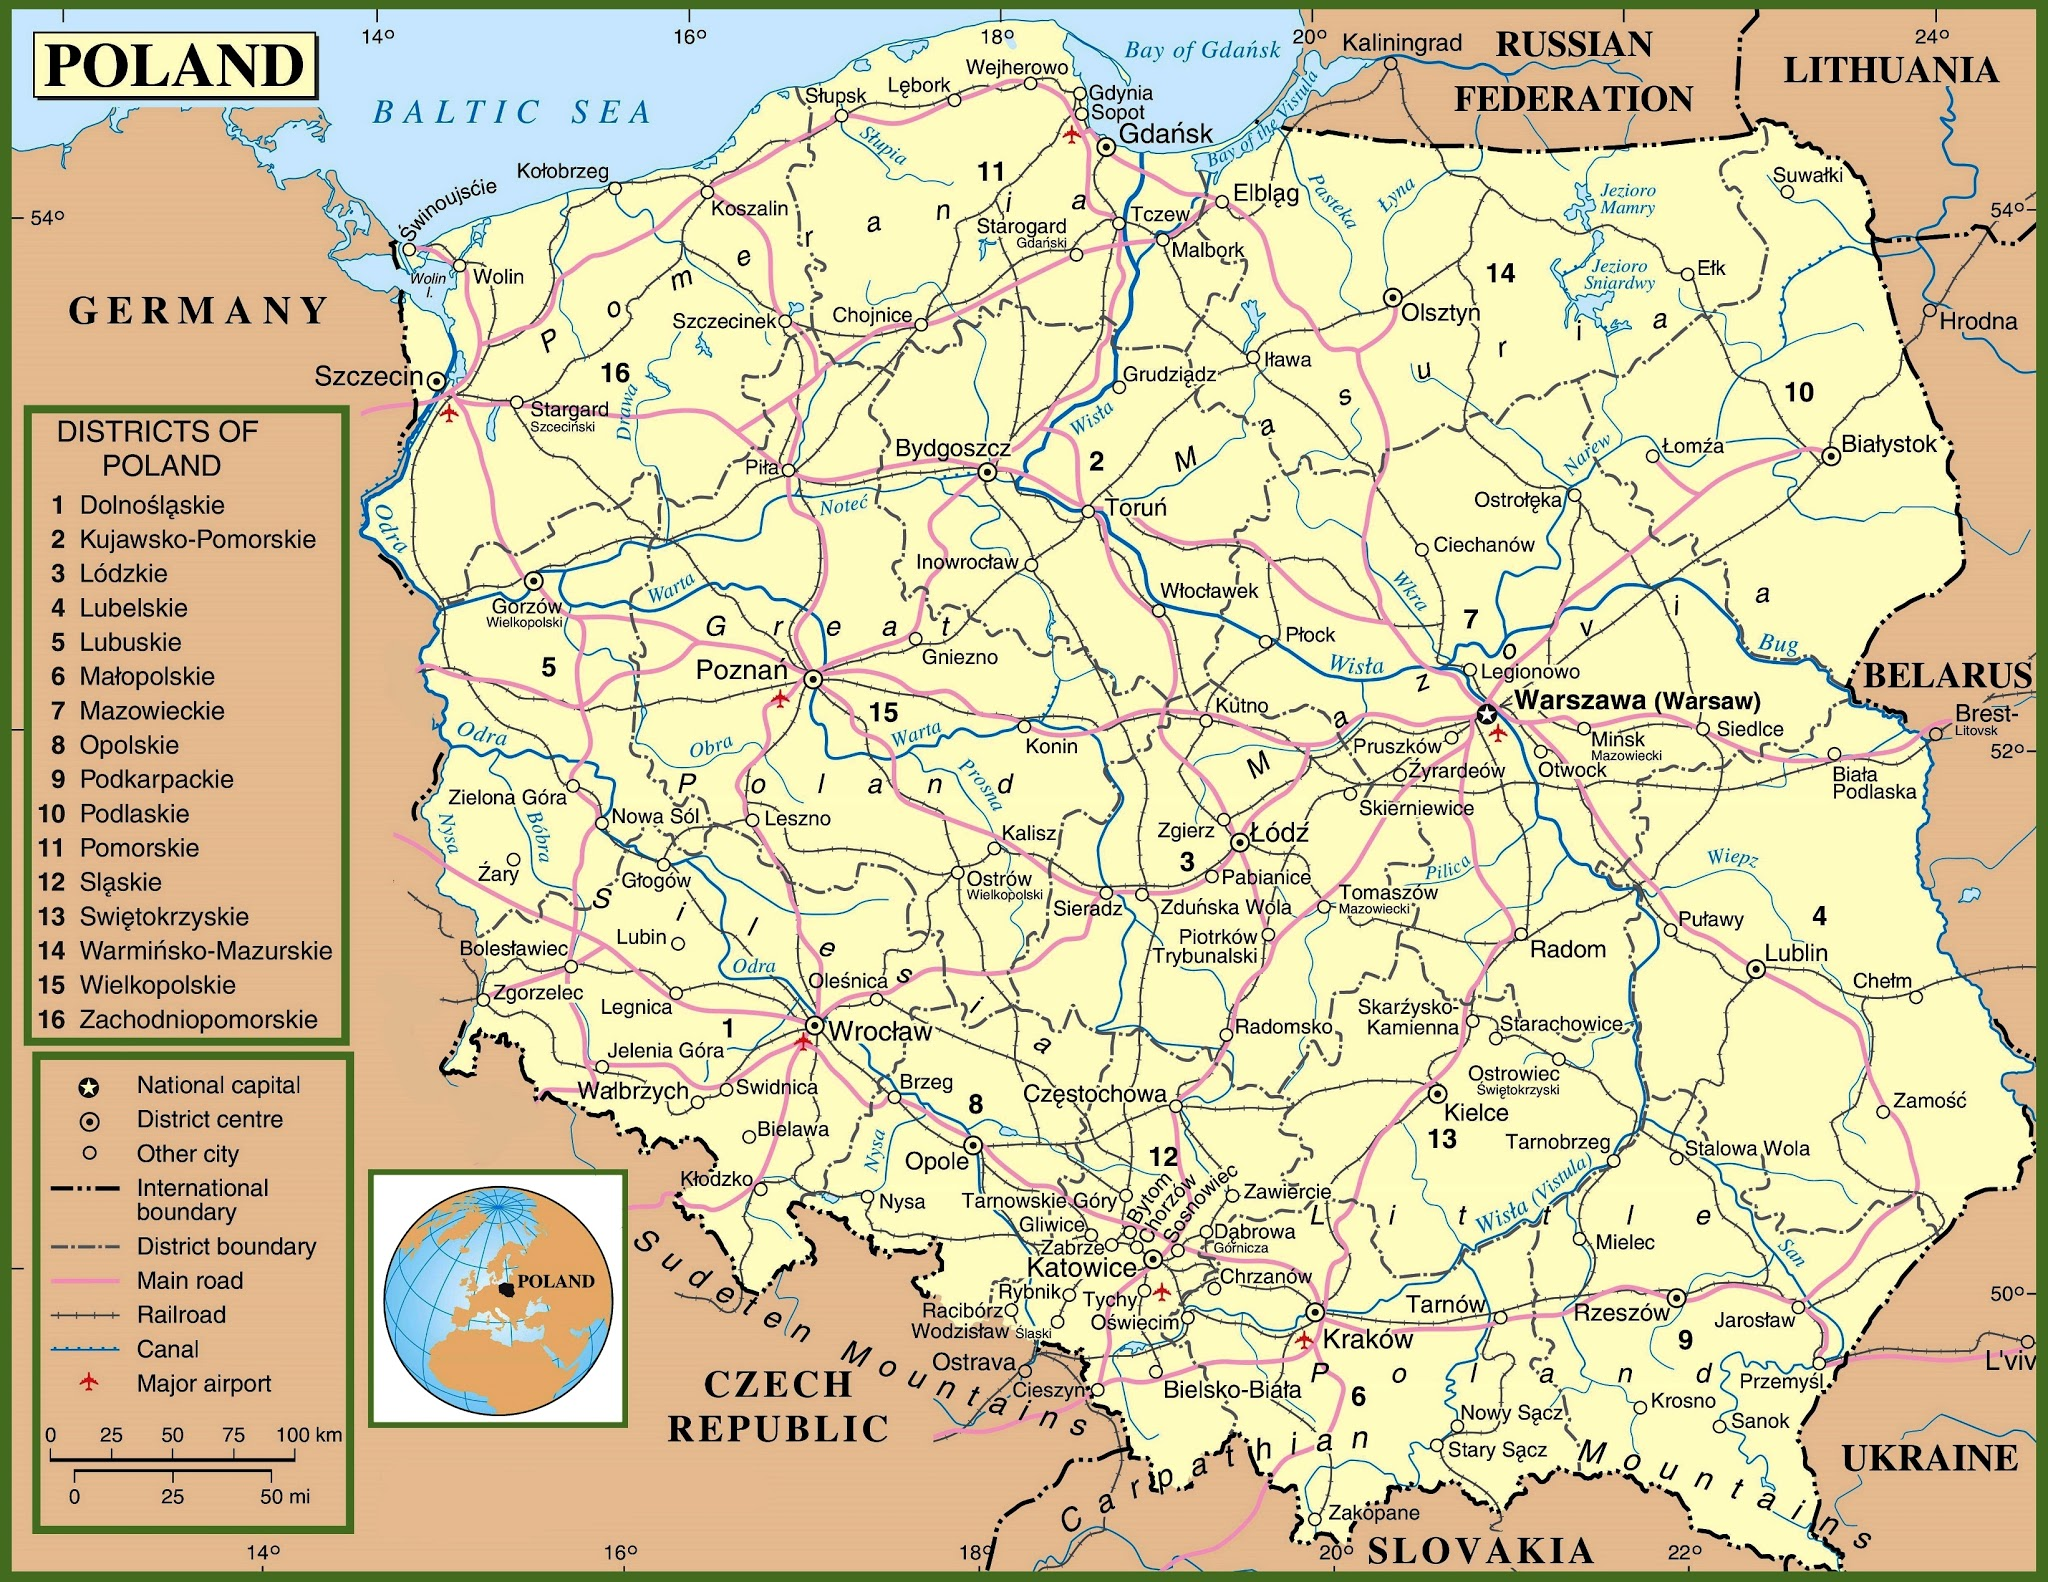 Poland map hd poland proudly europe global villageglobal village republic of poland map hd world maps poland map hd gumiabroncs Images